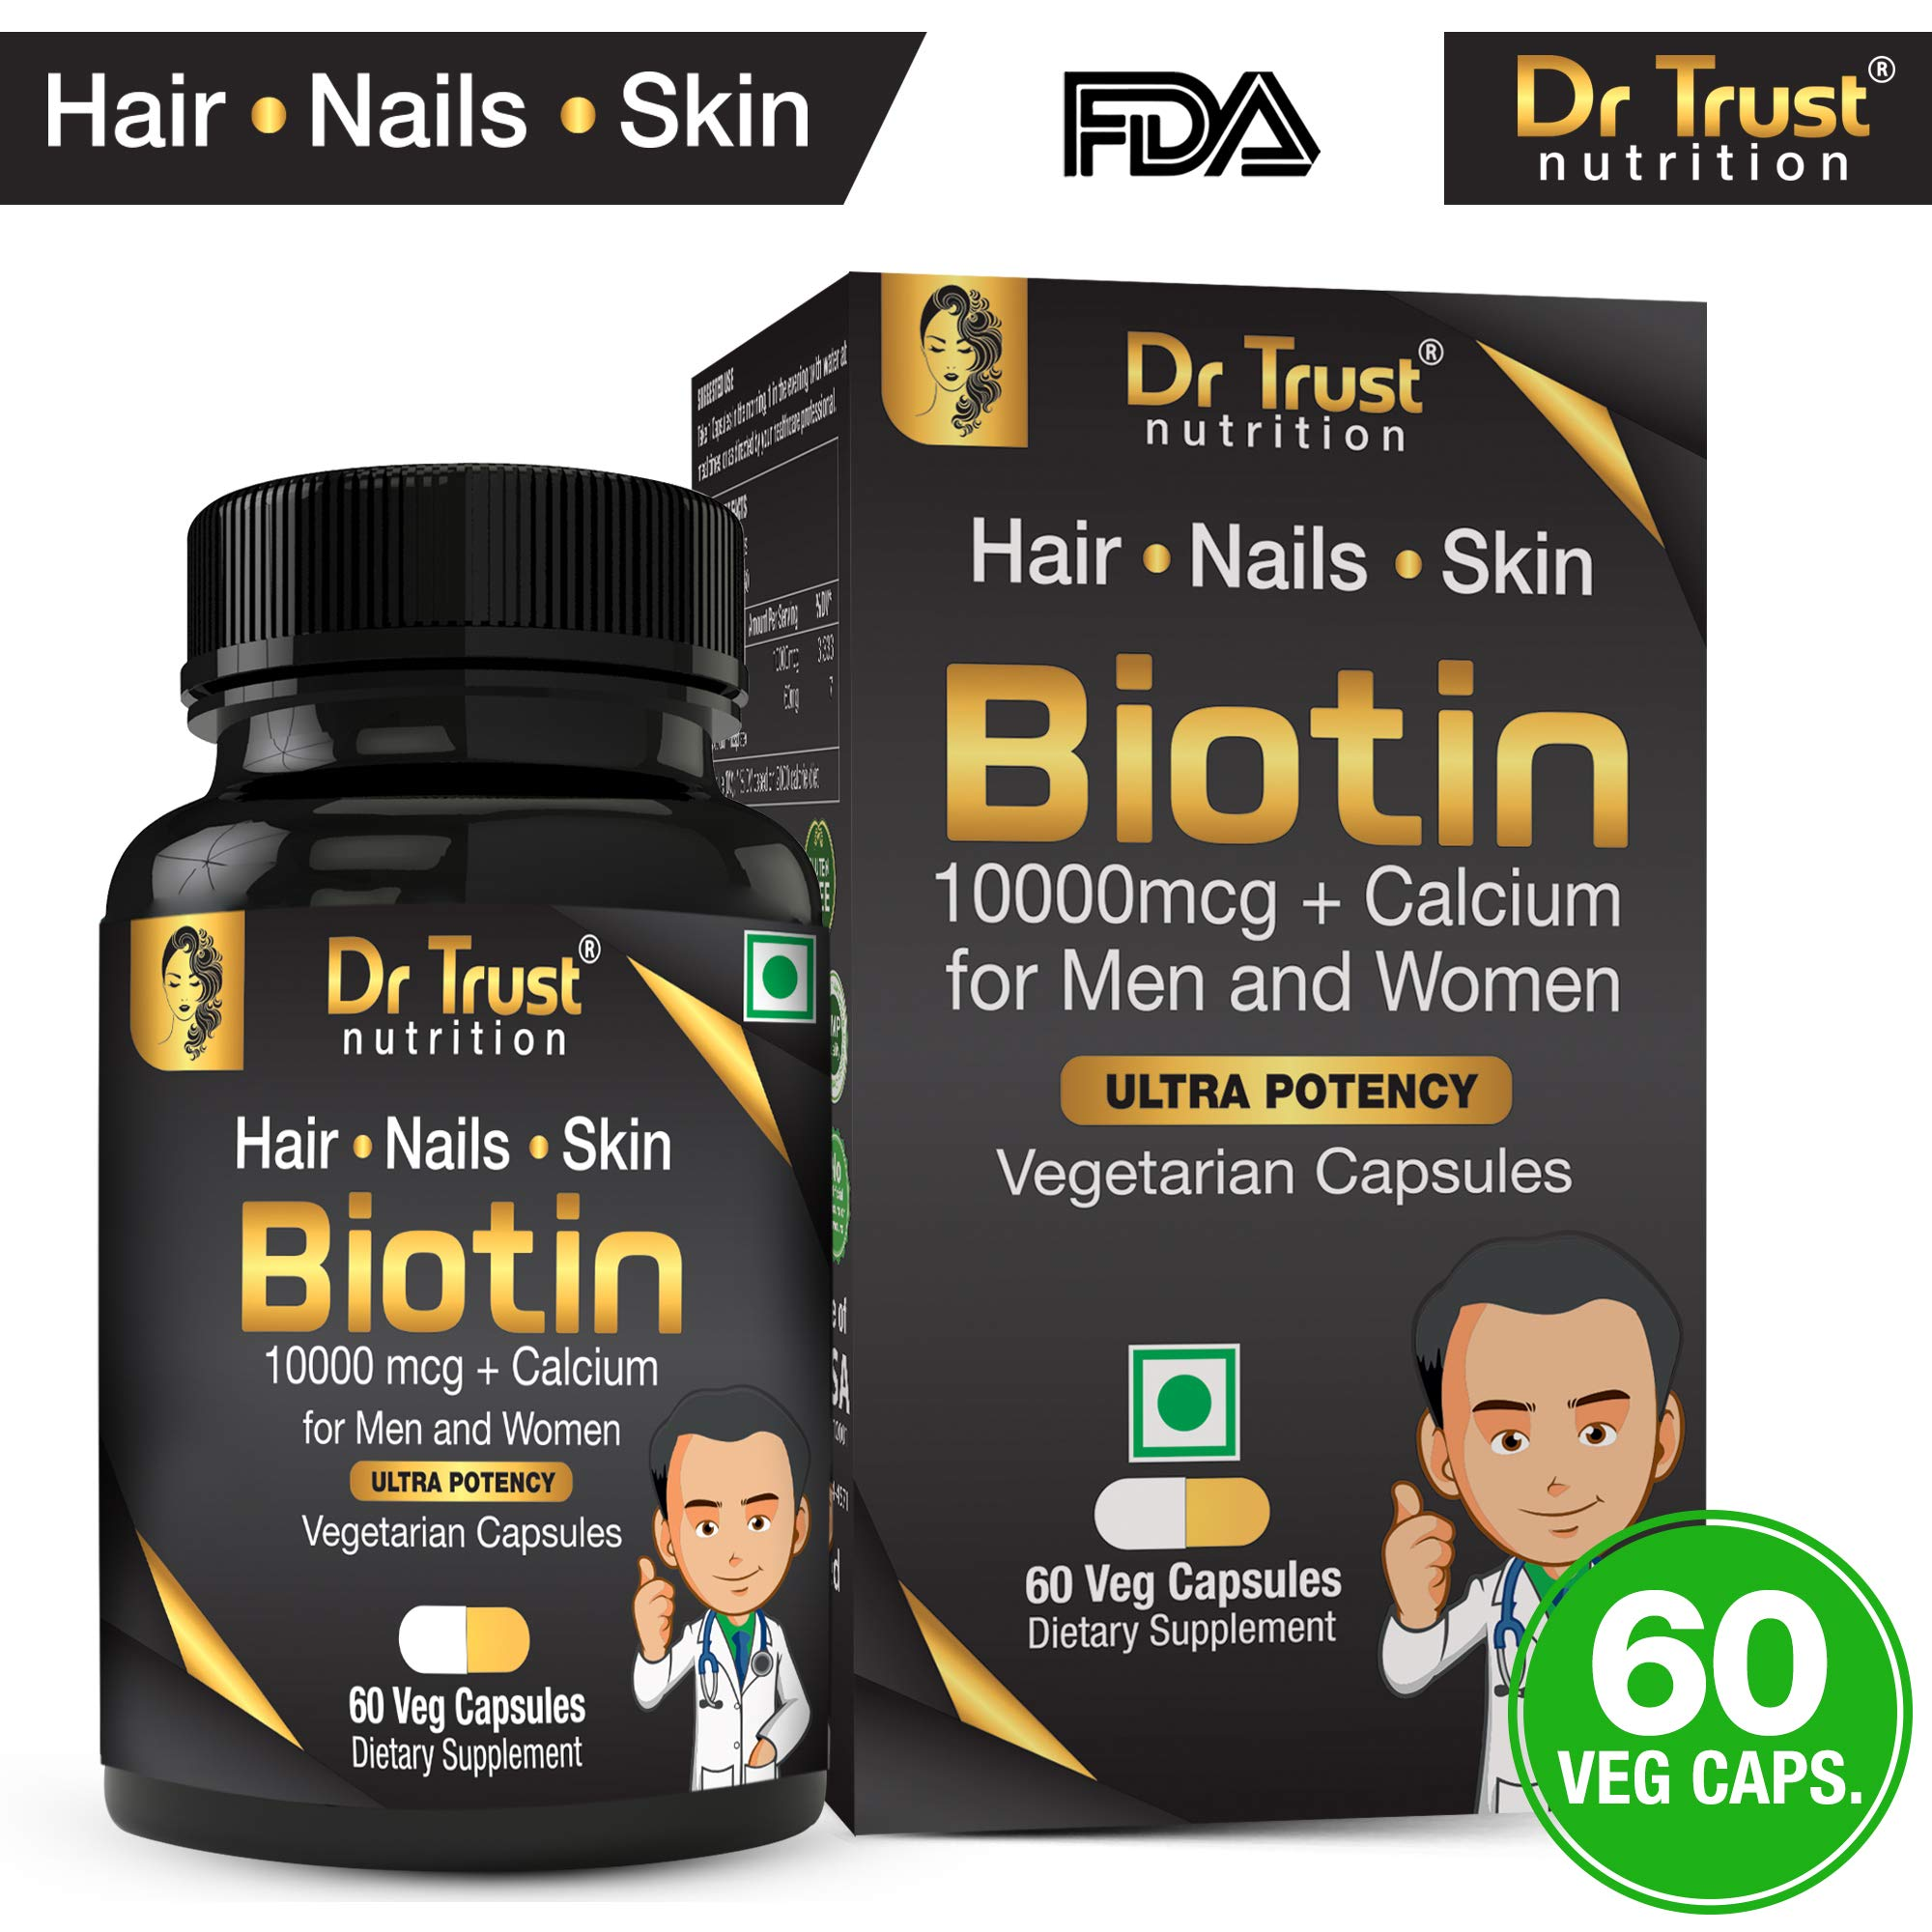 Dr Trust (USA) Biotin 10000 mcg with Added Calcium for Hair Growth Improve Skin & Strengthens Nails Supplements (60 Veg Capsules) product image